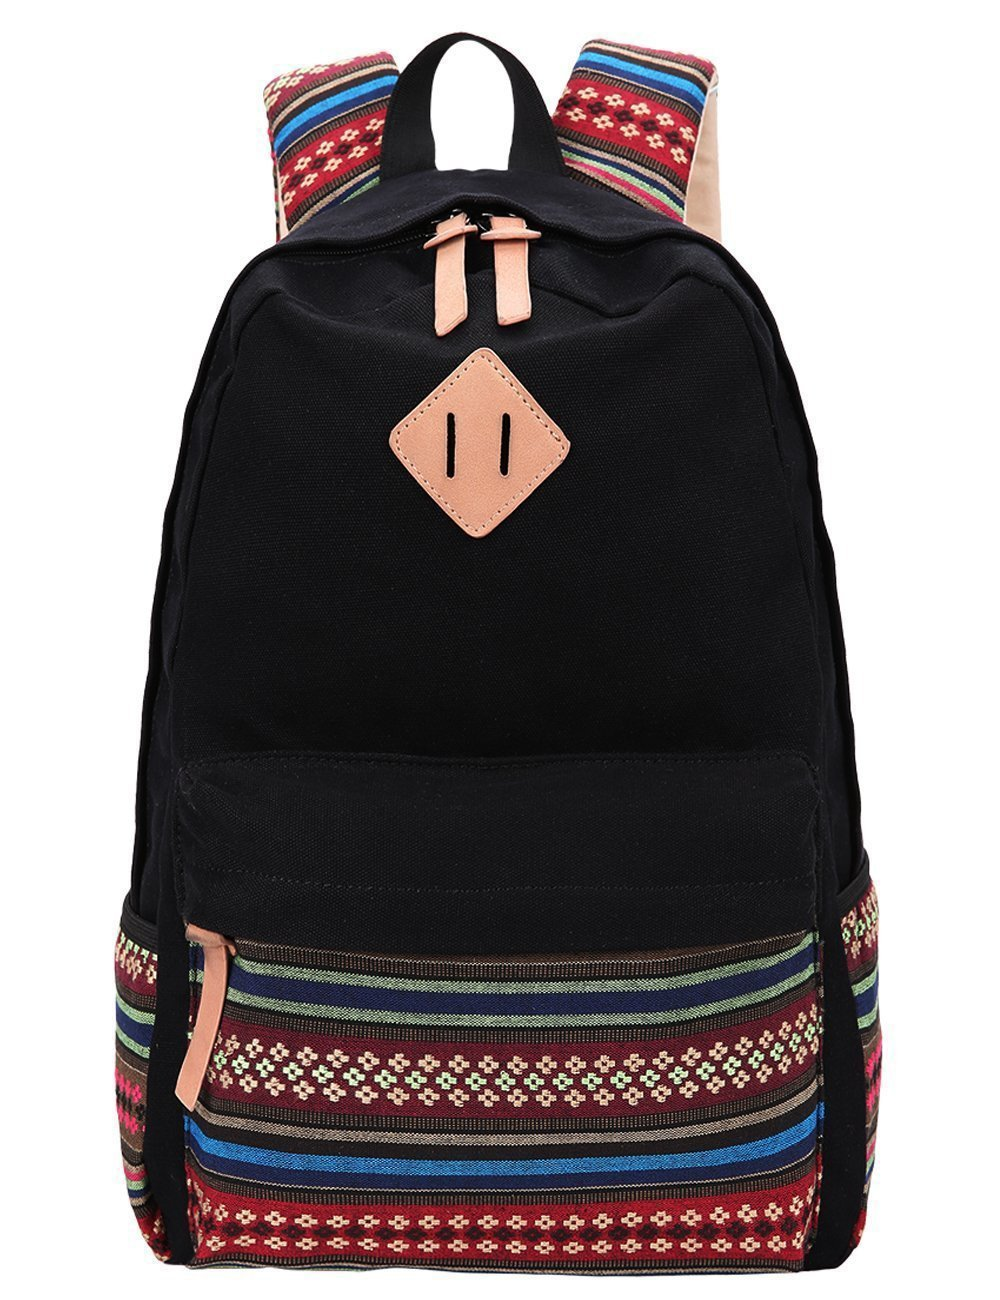 Backpack Hmxpls Fashionable Students Lightweight